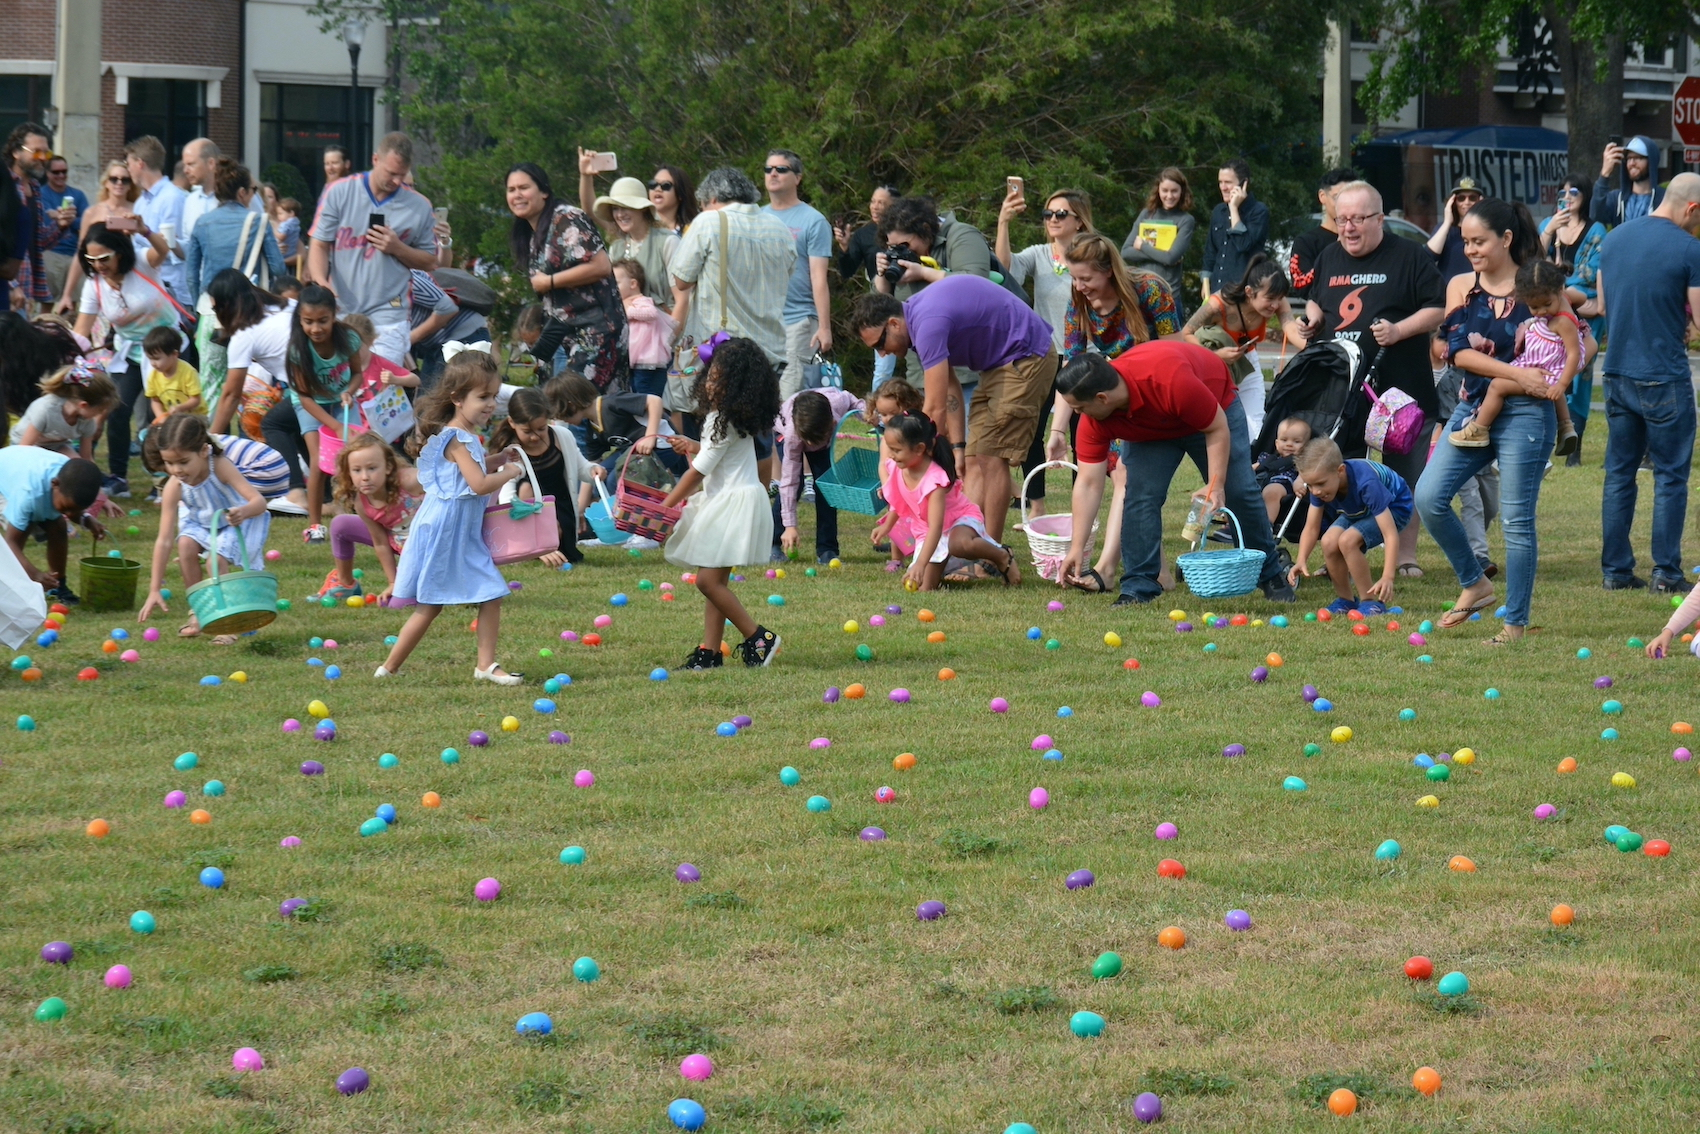 Children collect Easter eggs at annual egg hunt in Central Park.